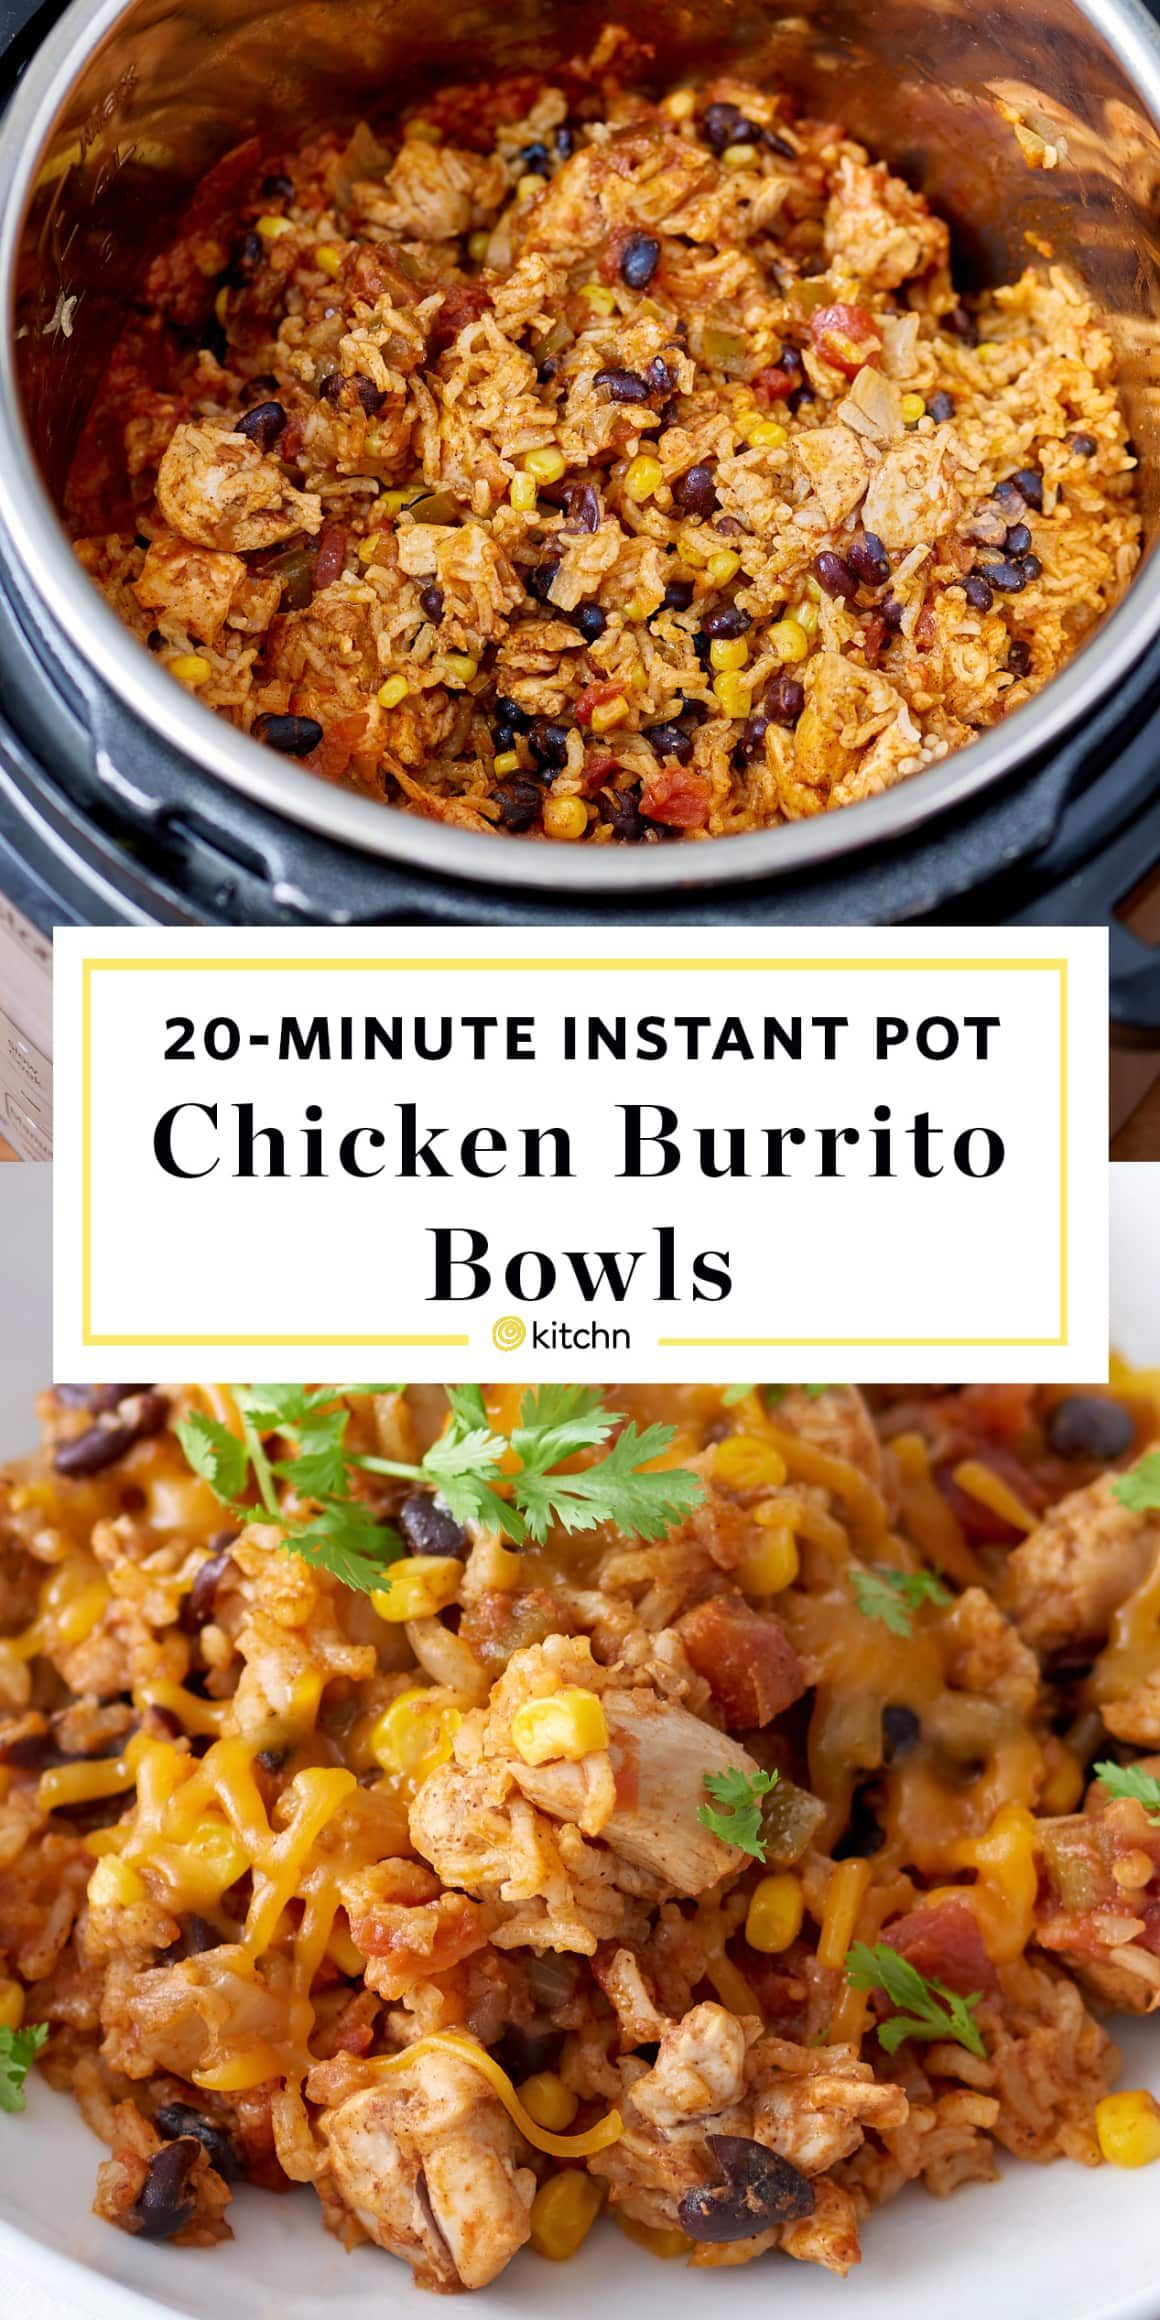 Instant Pot Weeknight Chicken and Rice Burrito Bowls SERVES 4 to 6 INGREDIENTS 1 1/2 tablespoons canola or vegetable oil 1 medium yellow onion, diced 2 cloves garlic, minced 1 tablespoon chili powder 1 1/2 teaspoons ground cumin 1 cup low-sodium chicken broth, divided 1 1/2 pounds boneless, skinless chicken thighs, cut into 1-inch pieces Kosher salt Freshly ground black pepper 1 (15-ounce) can black beans, drained and rinsed 1 cup frozen corn kernels 1 (16-ounce) jar salsa 1 cup long-grain ...